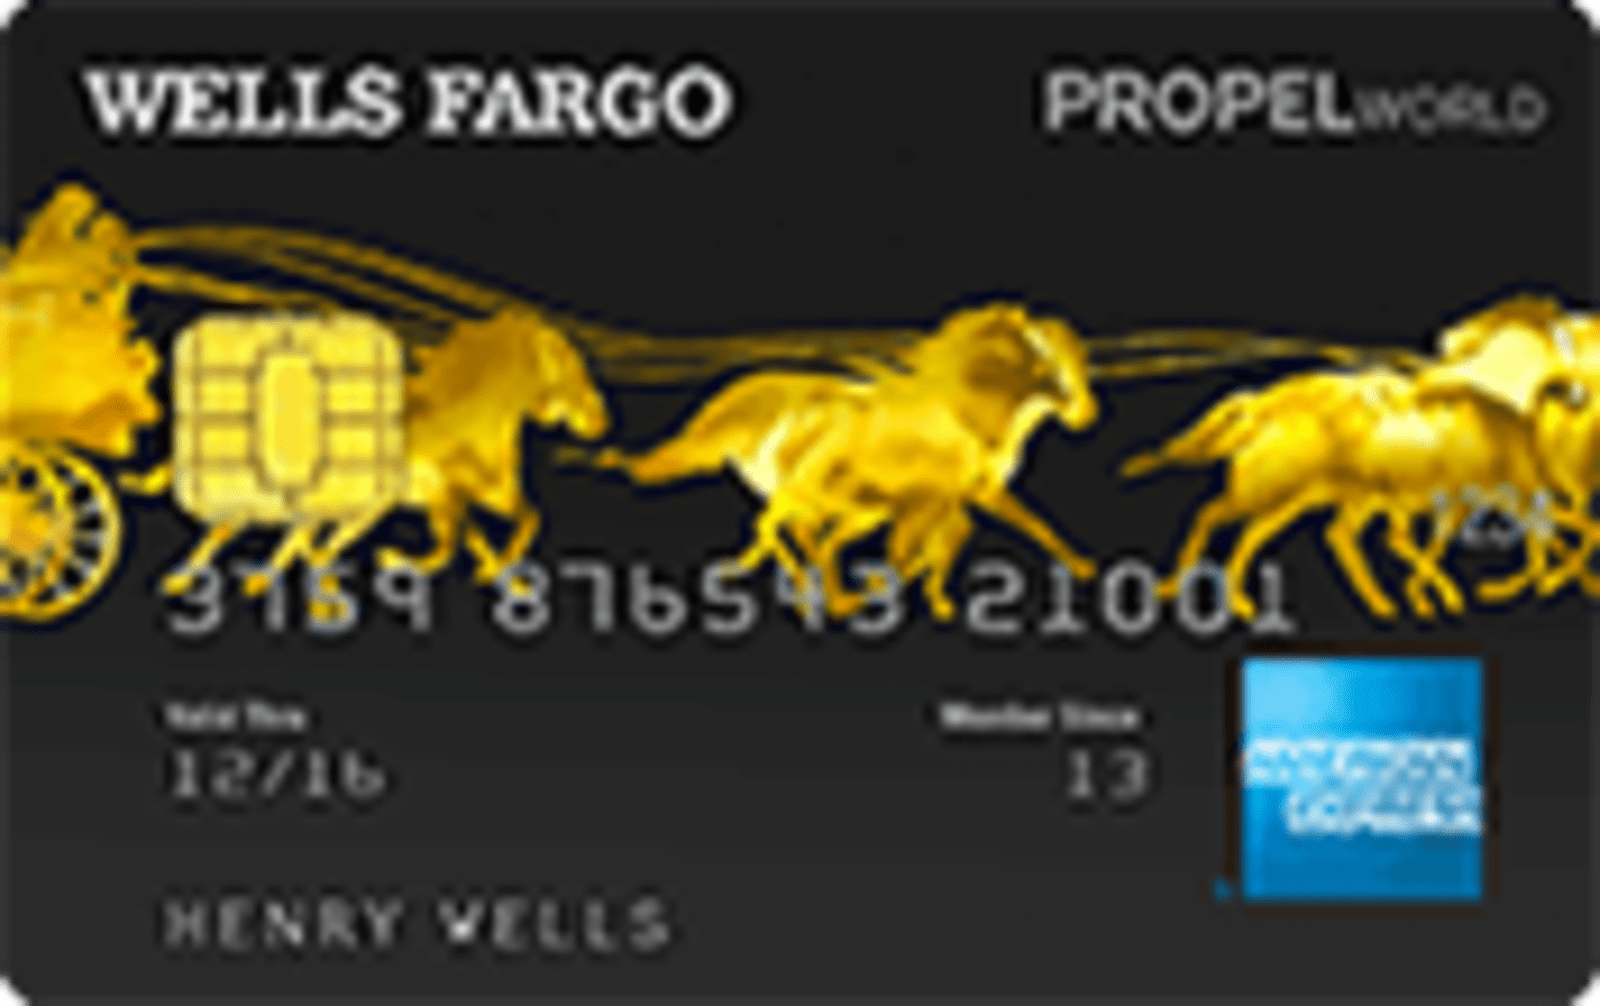 Wells Fargo Propel World Credit Card - 3x Points for Airfare